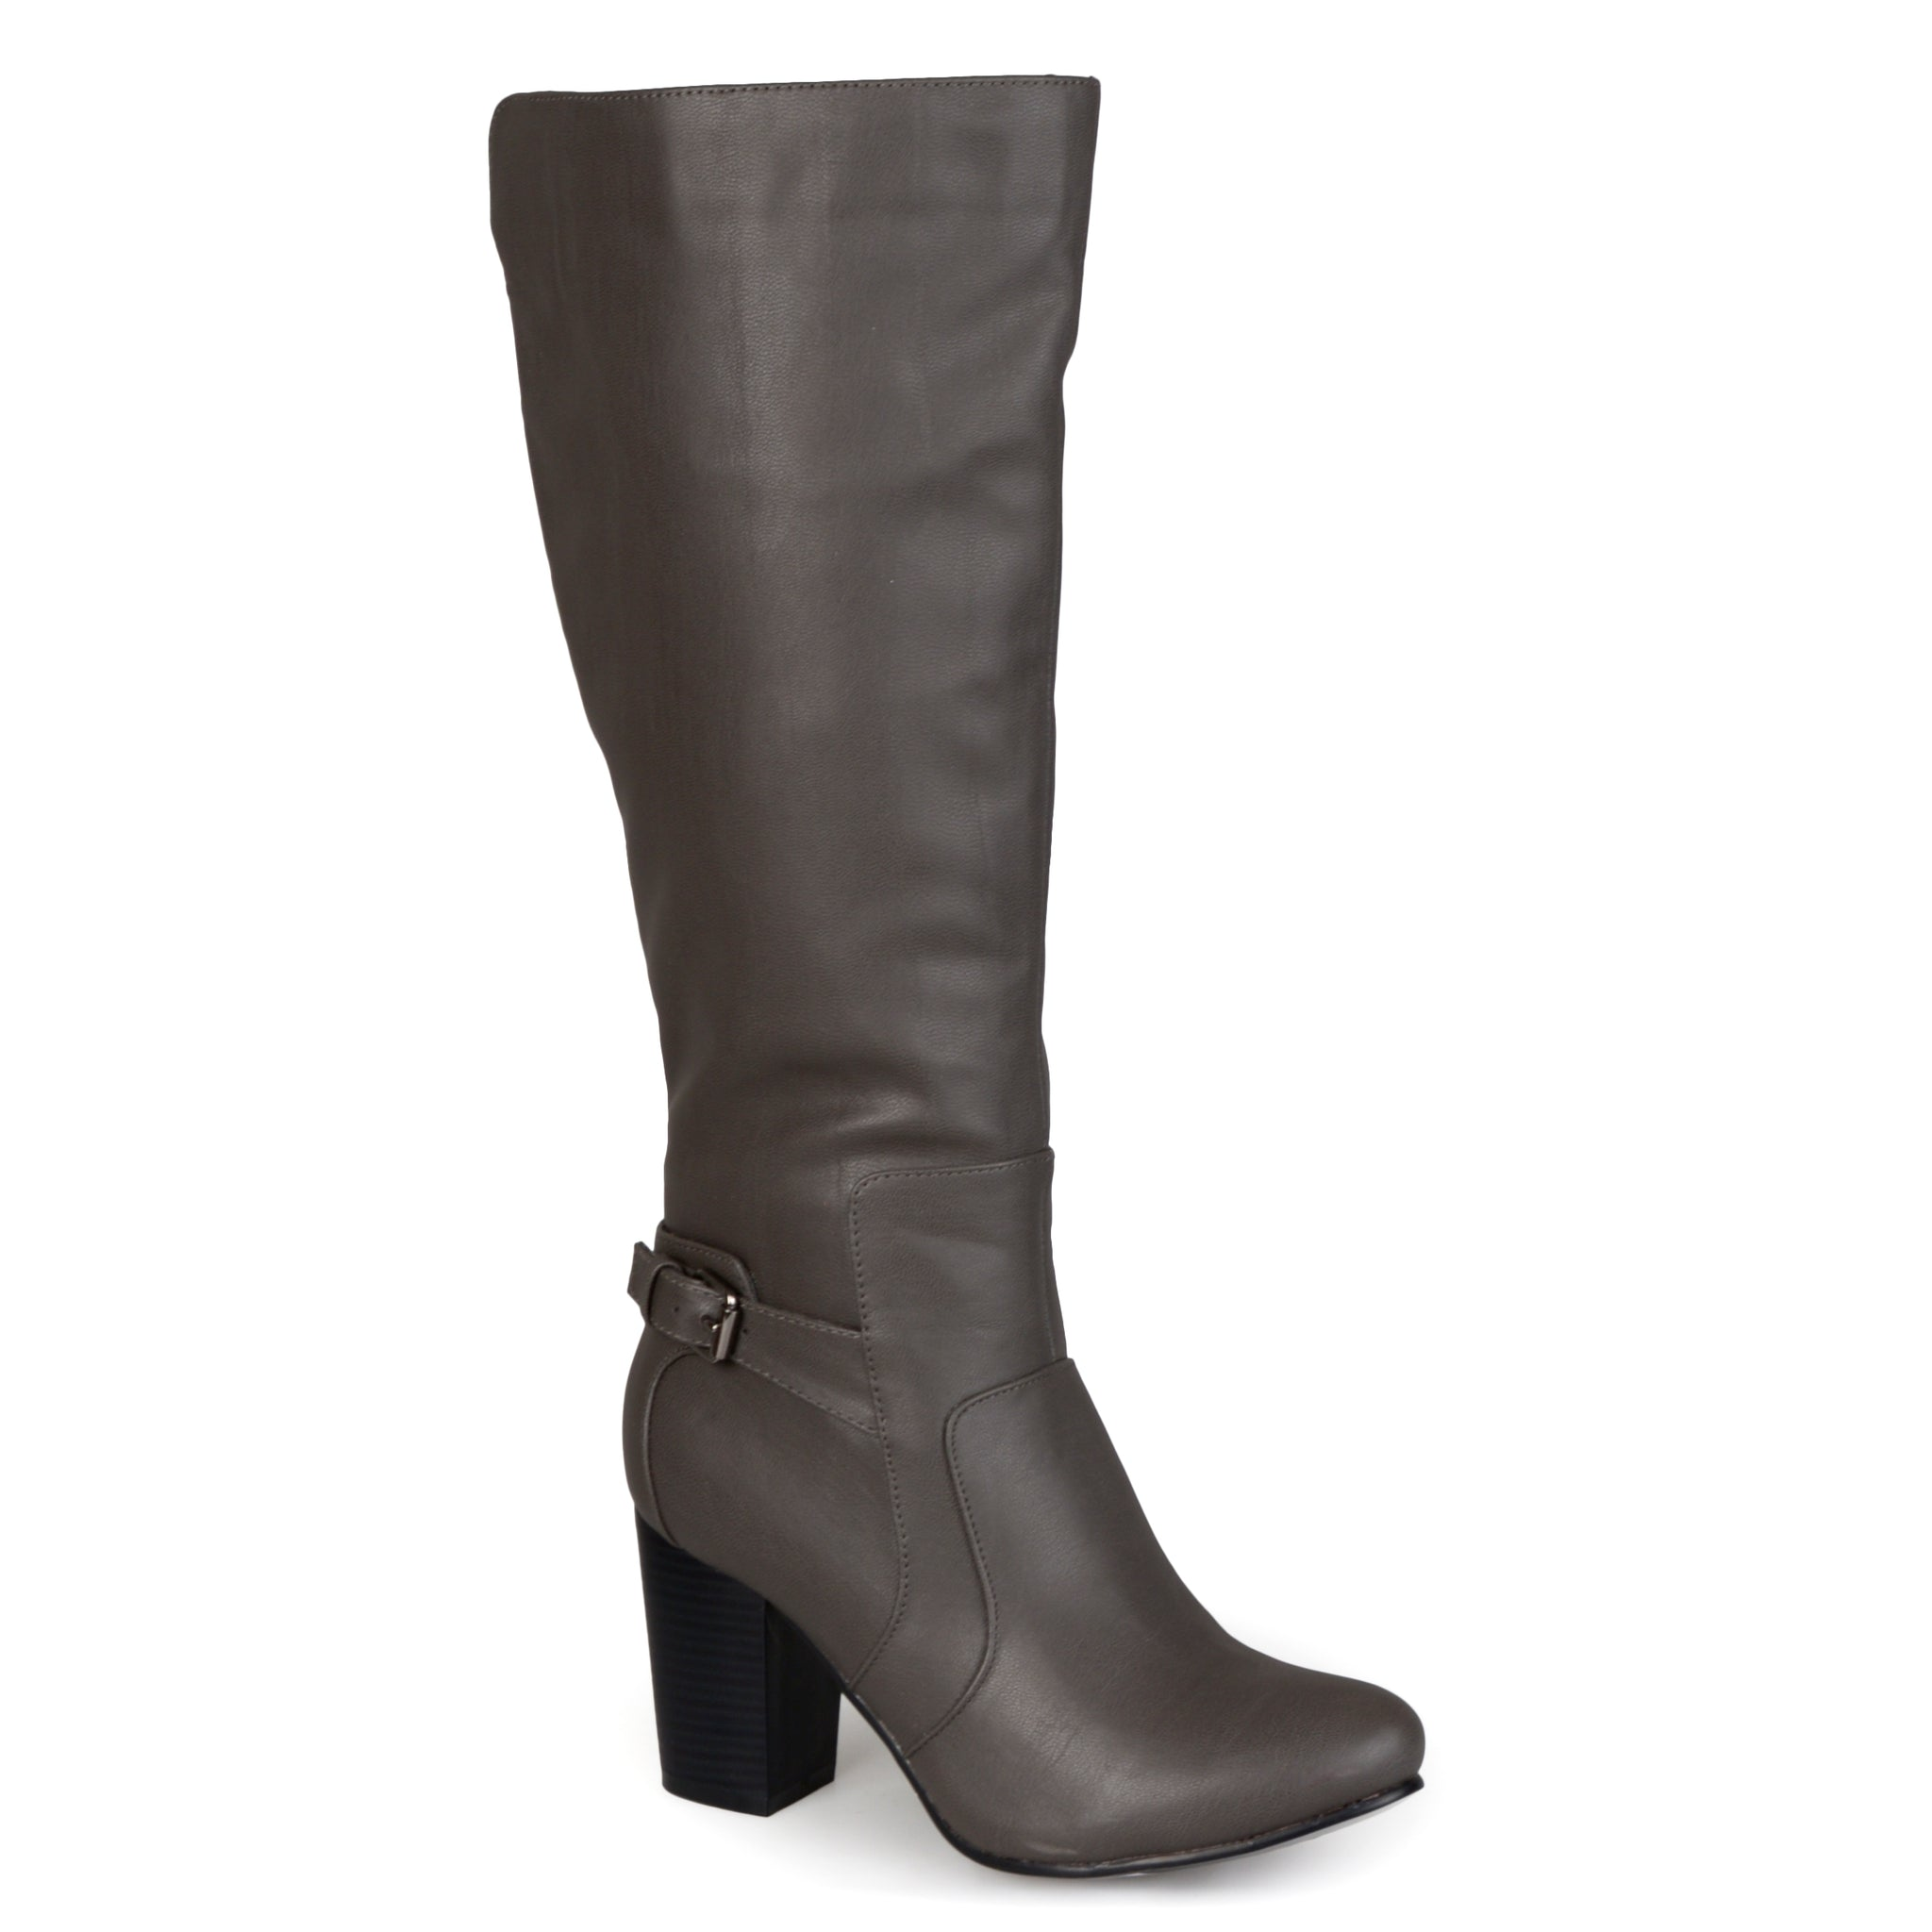 Buckle Detail High-Heeled Boot